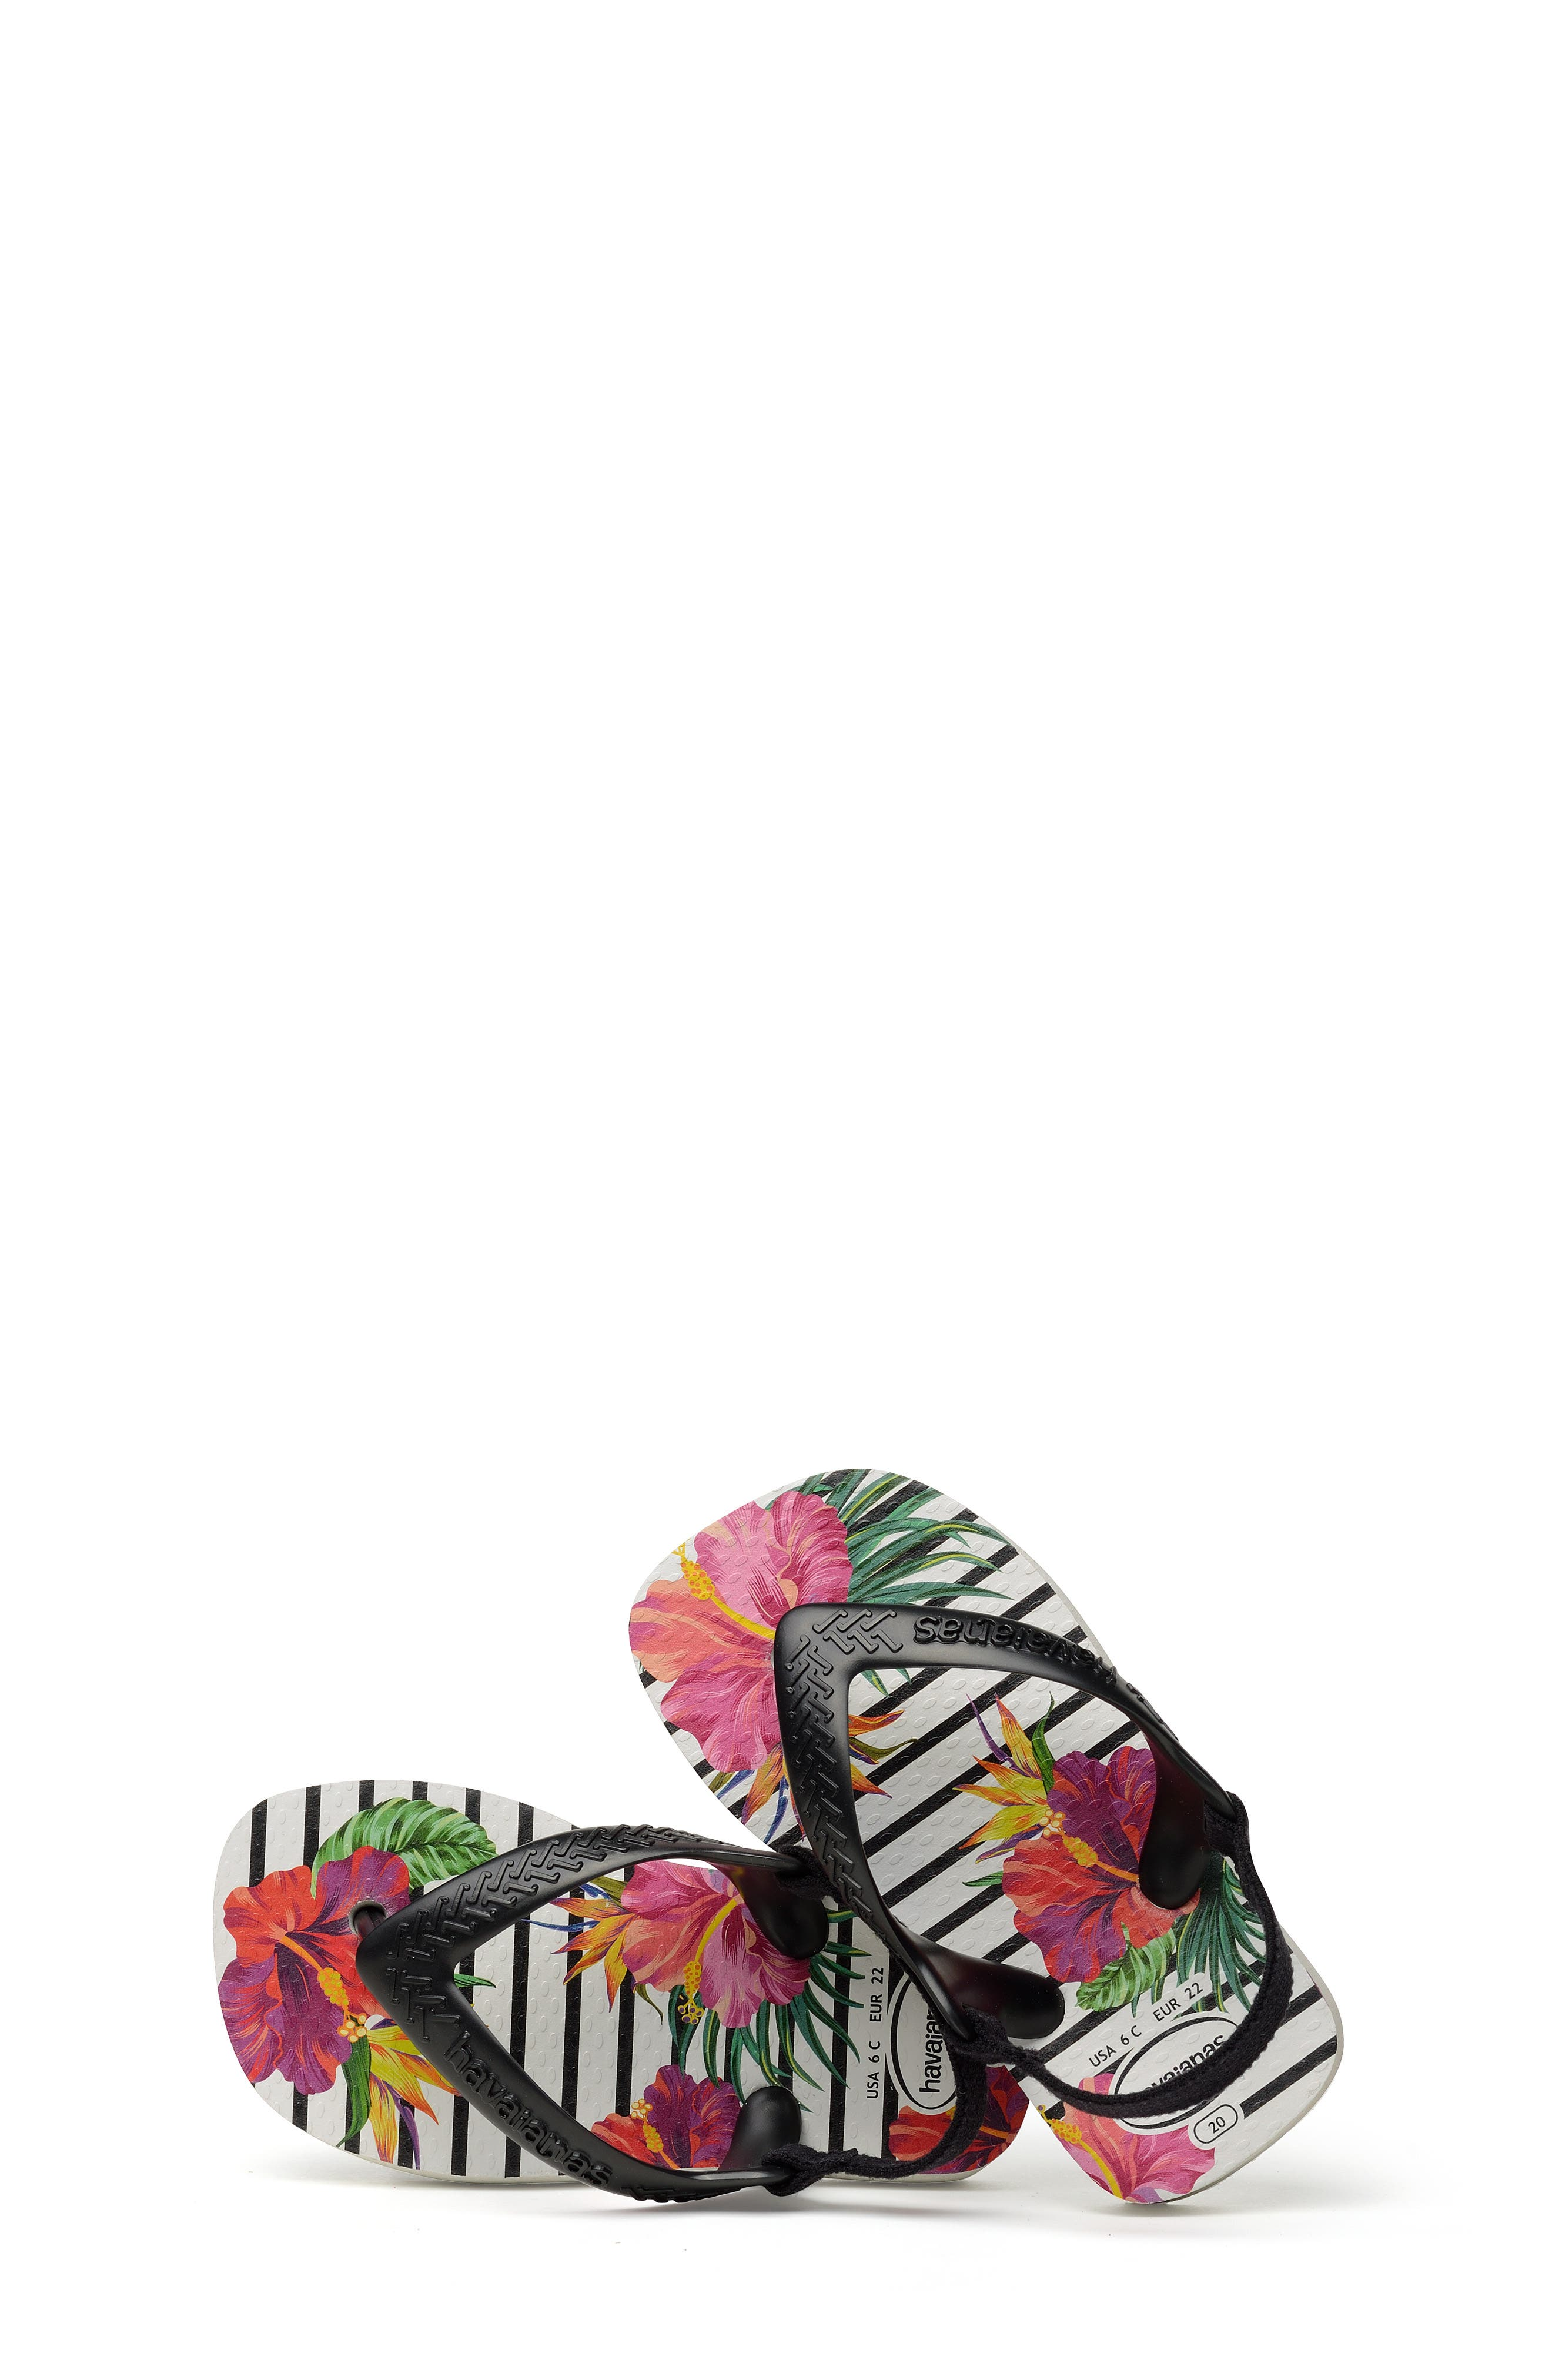 HAVAIANAS, Havianas Baby Chic Sandal, Alternate thumbnail 7, color, WHITE